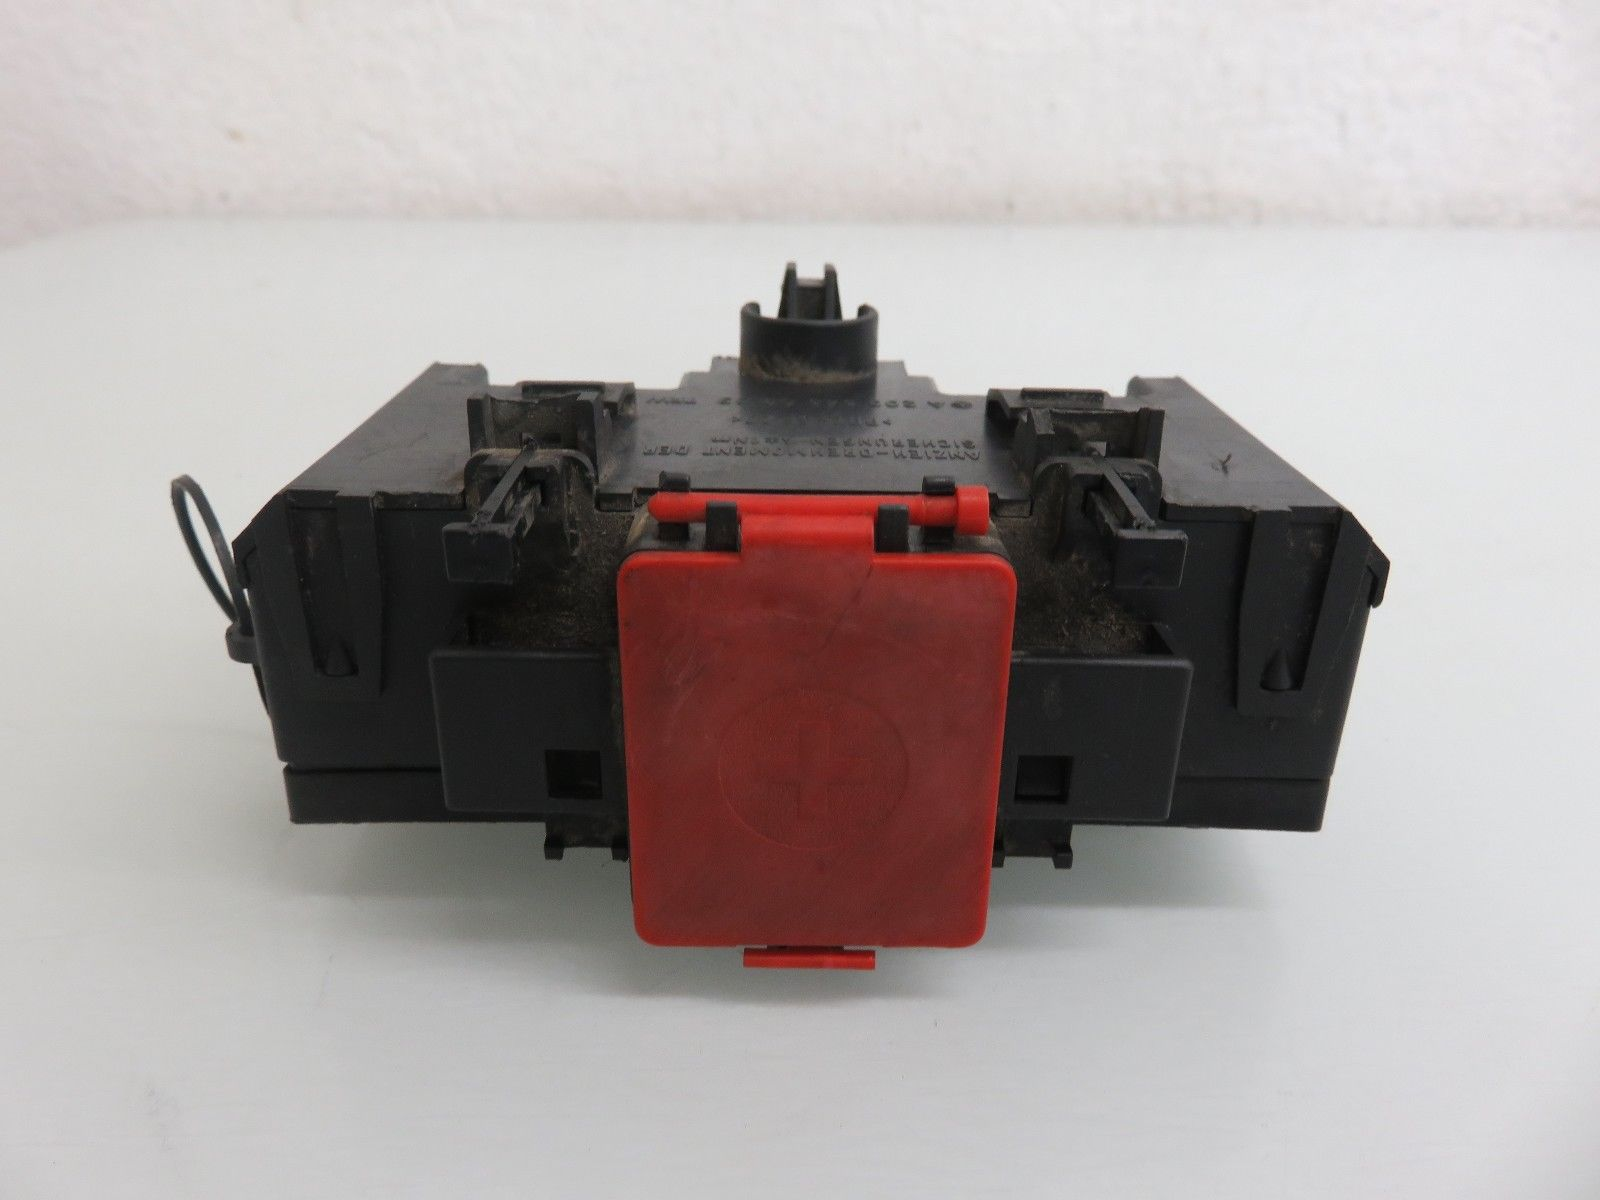 C240 Fuse Box Wiring Library Renault Clio 01 07 Mercedes Benz W203 C230 Terminal Positive Negative Connector 2035450803